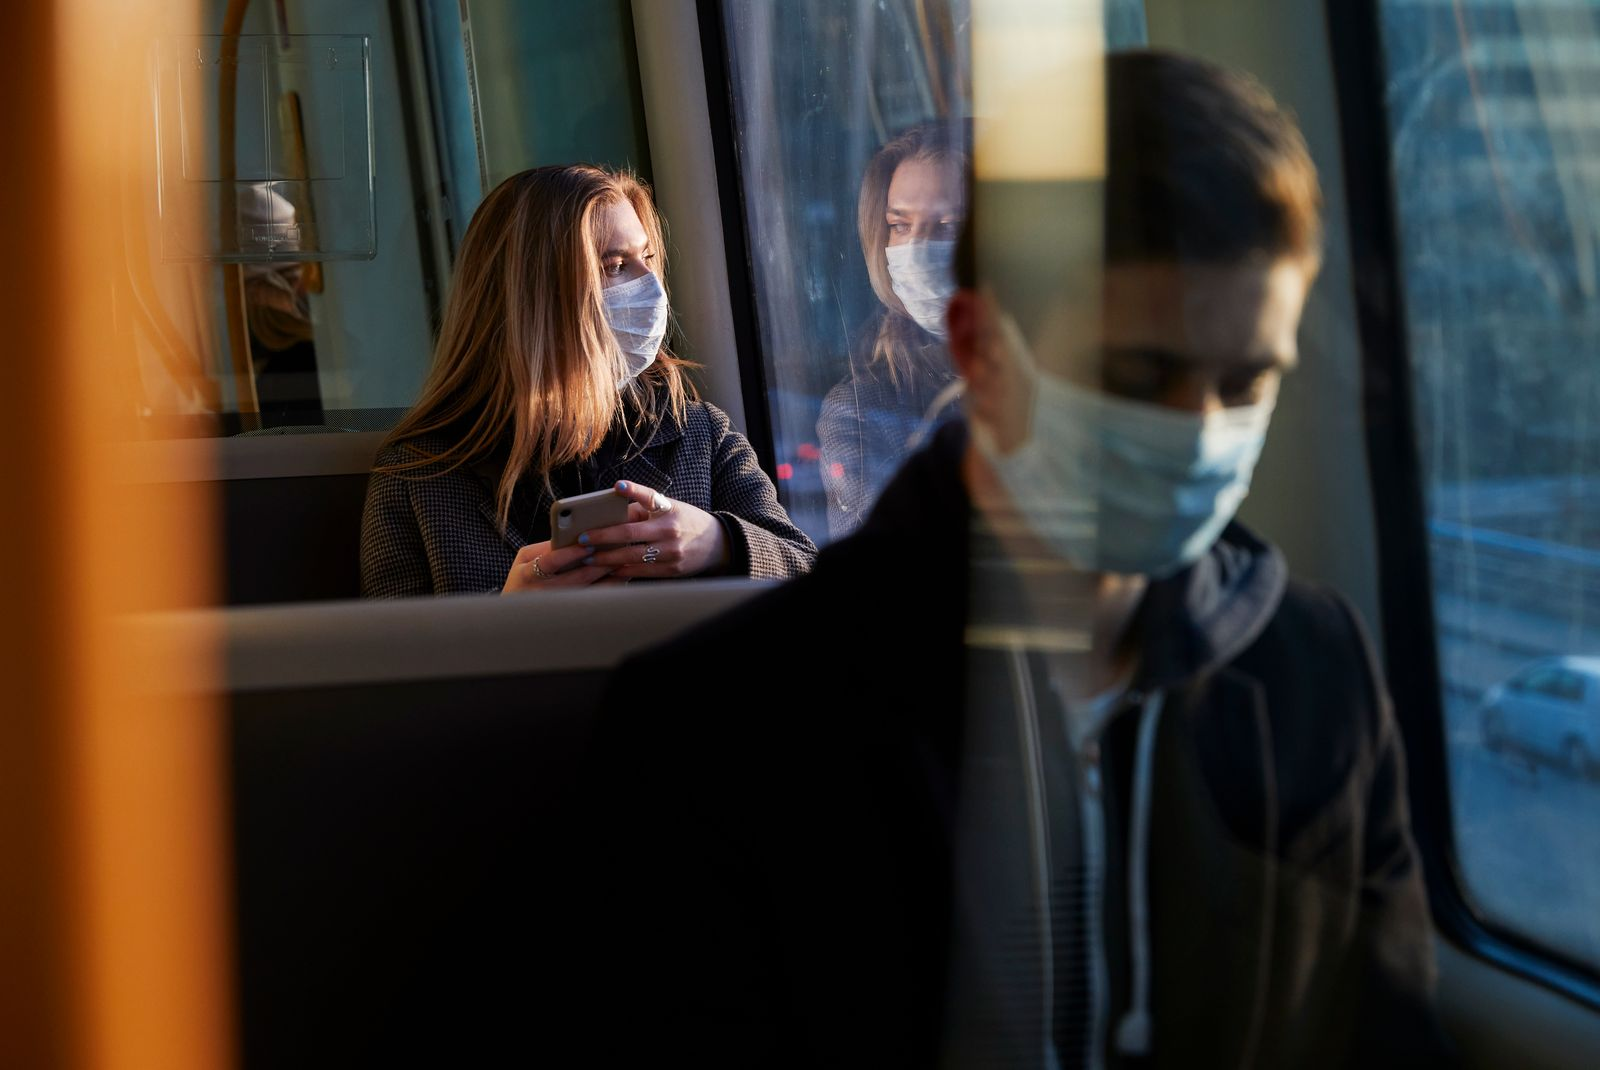 young woman sitting in train wearing protective mask, using smartphone